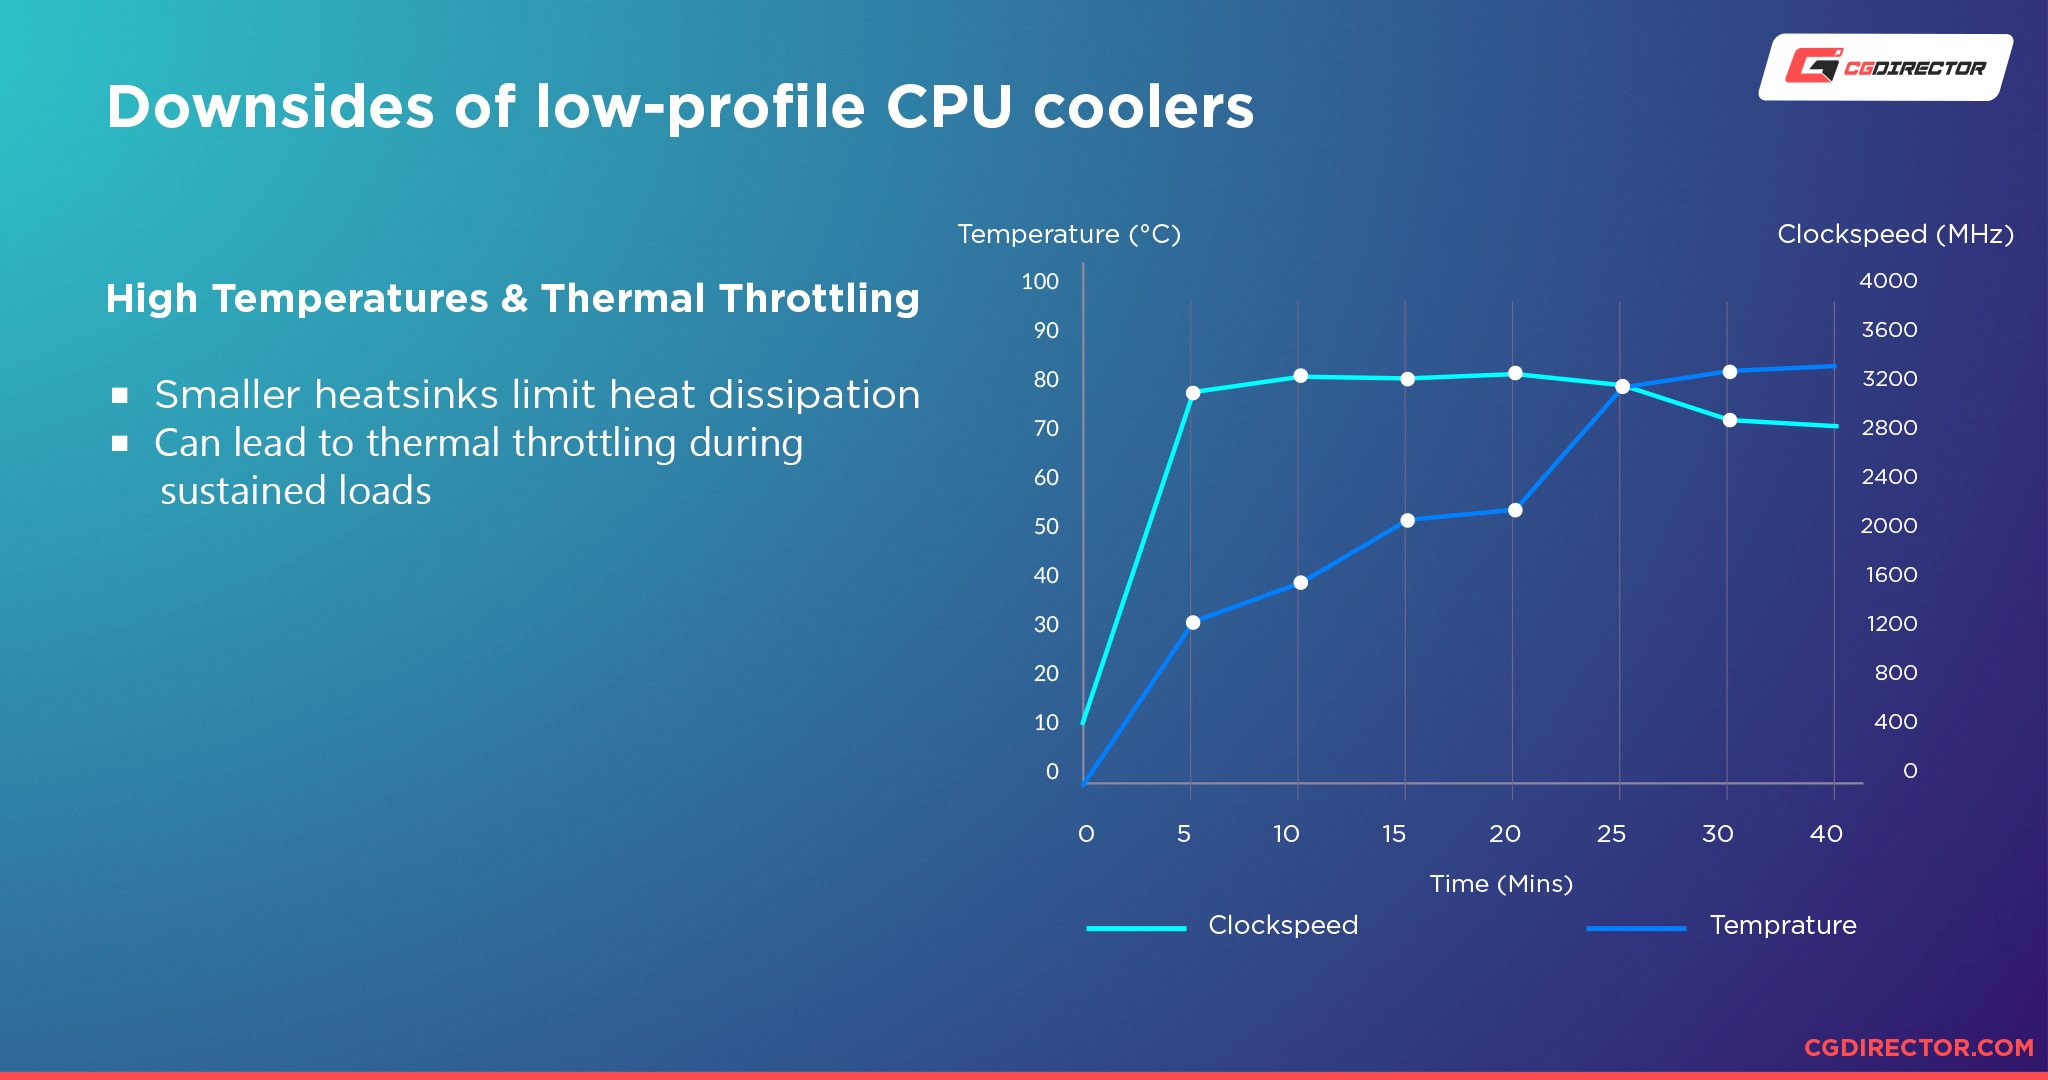 The downsides of a low-profile CPU cooler